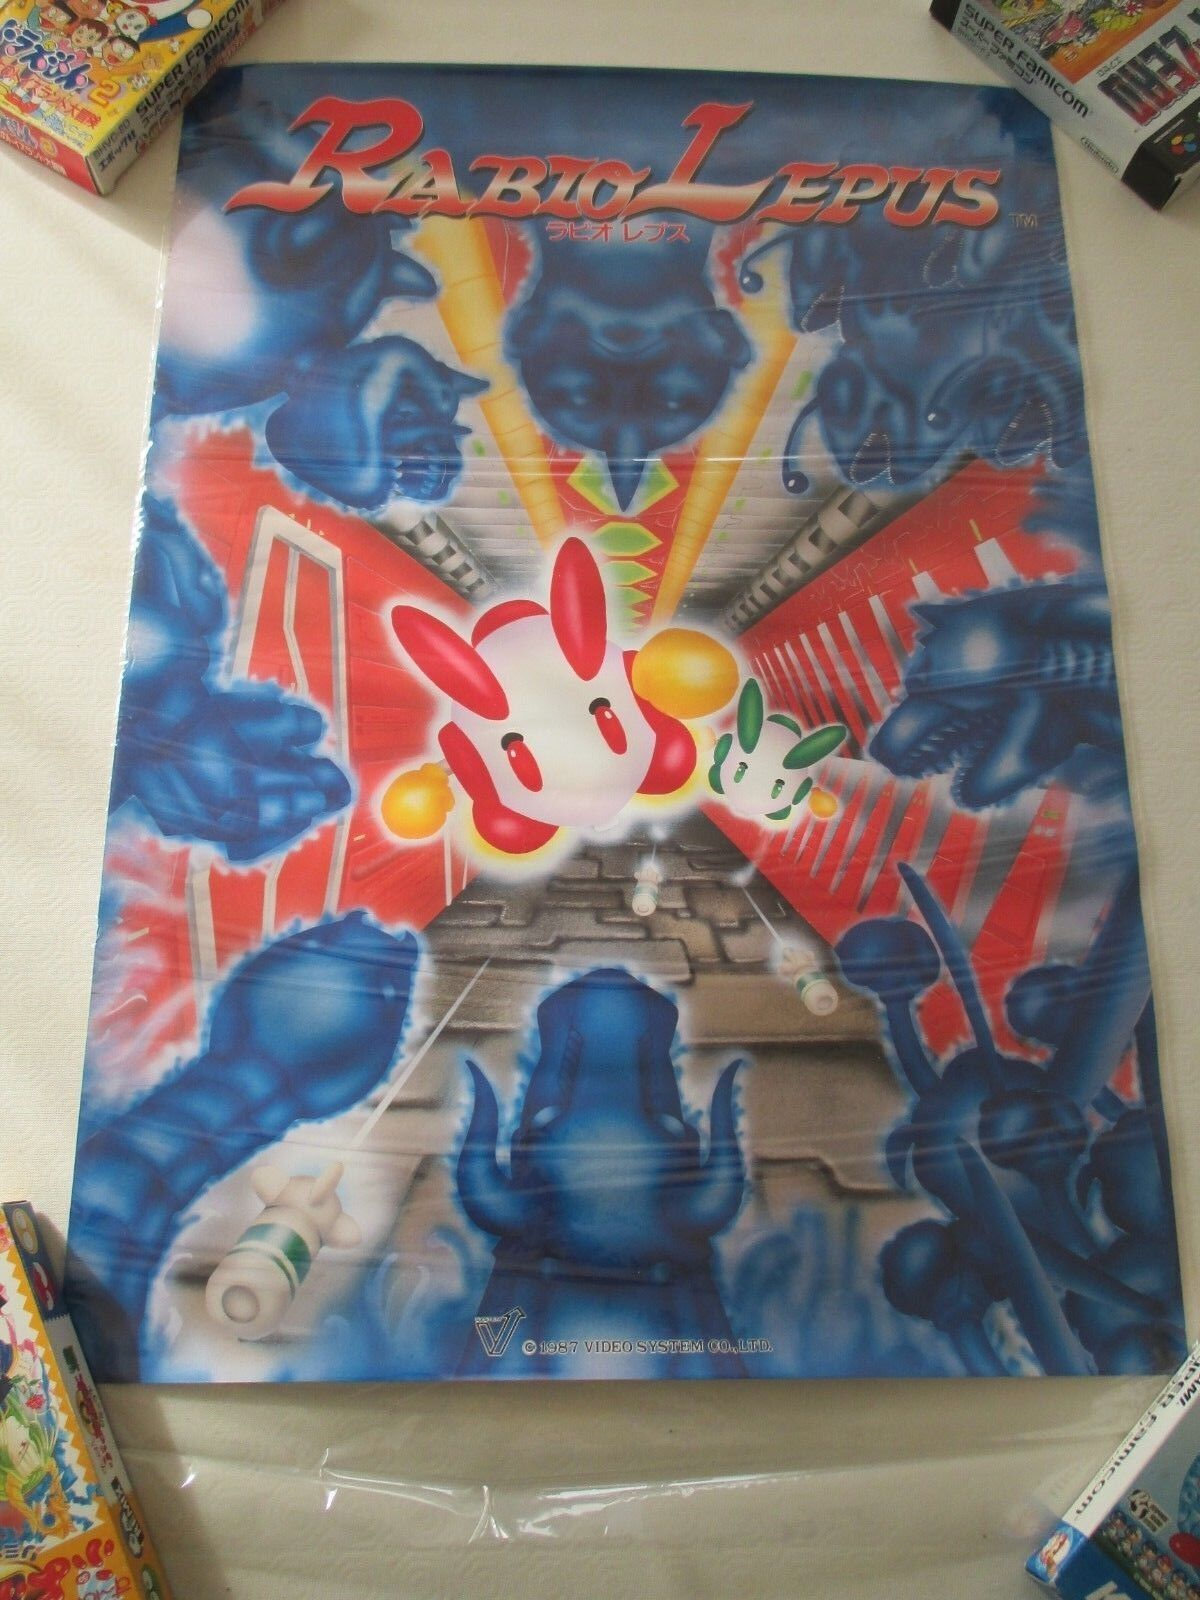 RABIO LEPUS SHOOT VIDEO SYSTEM ARCADE B2 Taille OFFICIAL ORIGINAL POSTER